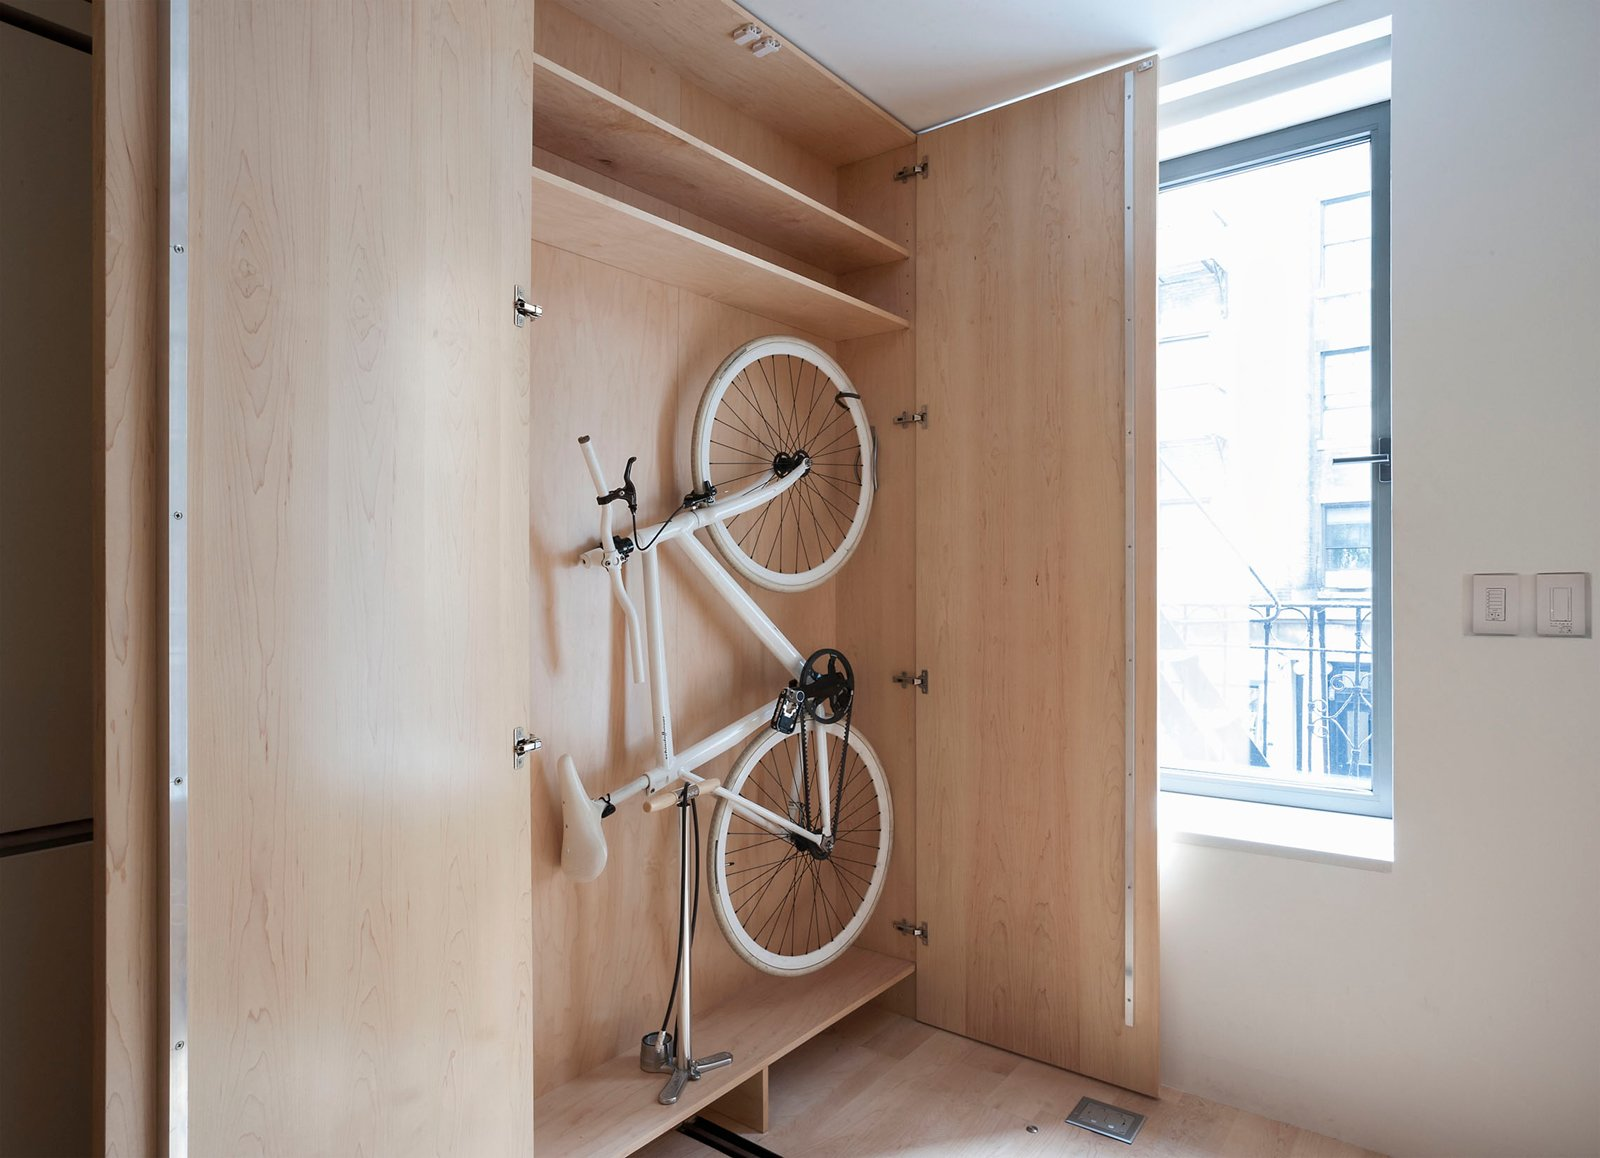 Hill's ThinBike, which he designed in partnership with Schindelhauer, features folding handlebars and pedals that allow it to easily fit snugly against a wall (or in this custom-sized cabinet).  Photo 7 of 12 in Small Space Living by LifeEdited